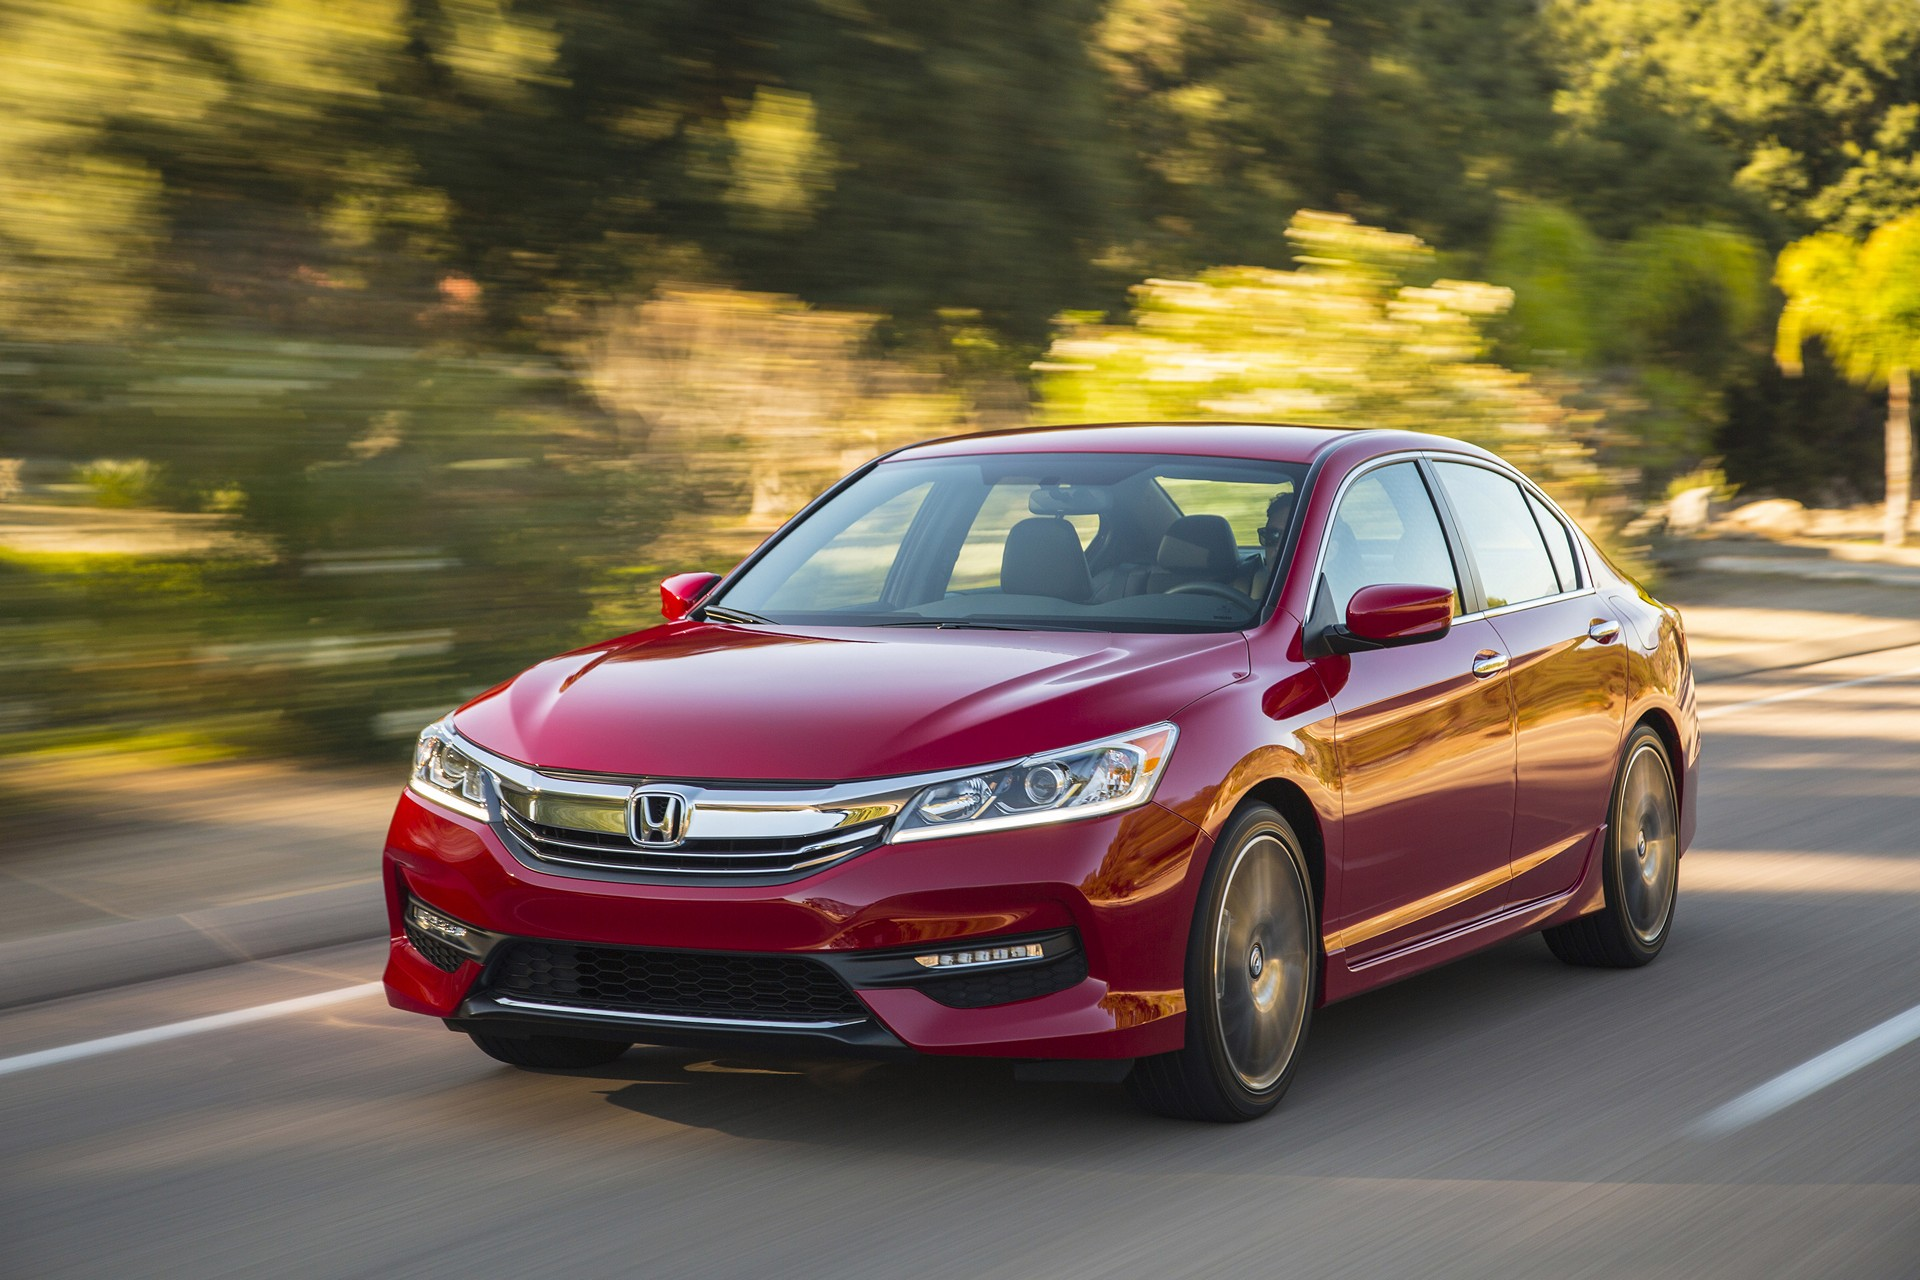 Marvelous 2016 Honda Accord Sedan © Honda Motor Co., Ltd.